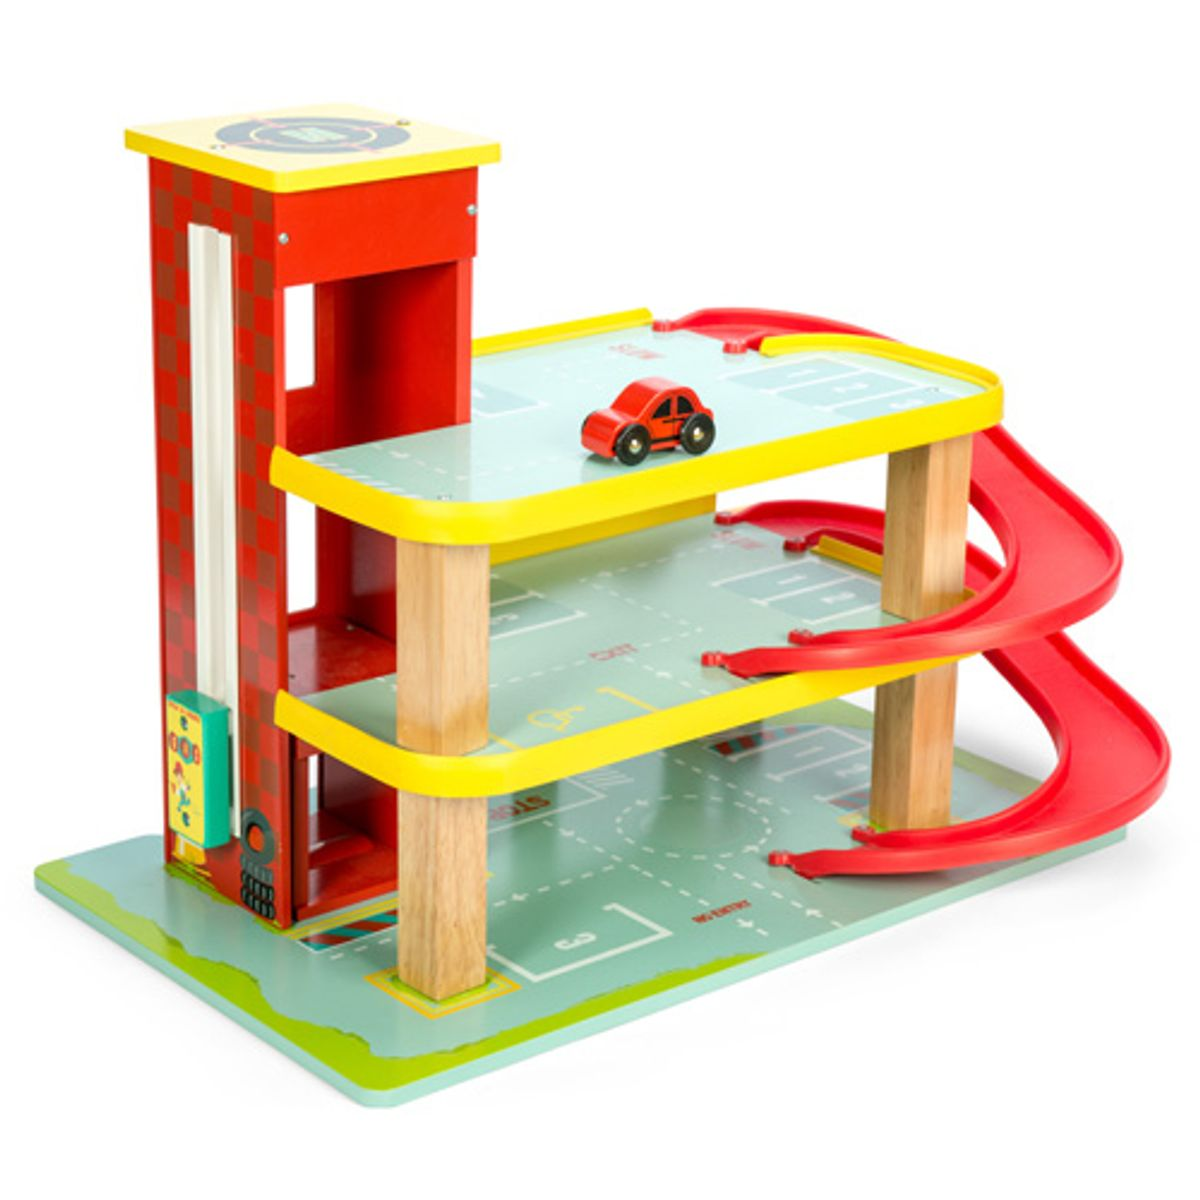 garage en bois rouge pour enfant le garage de dino le toy van decoclico. Black Bedroom Furniture Sets. Home Design Ideas